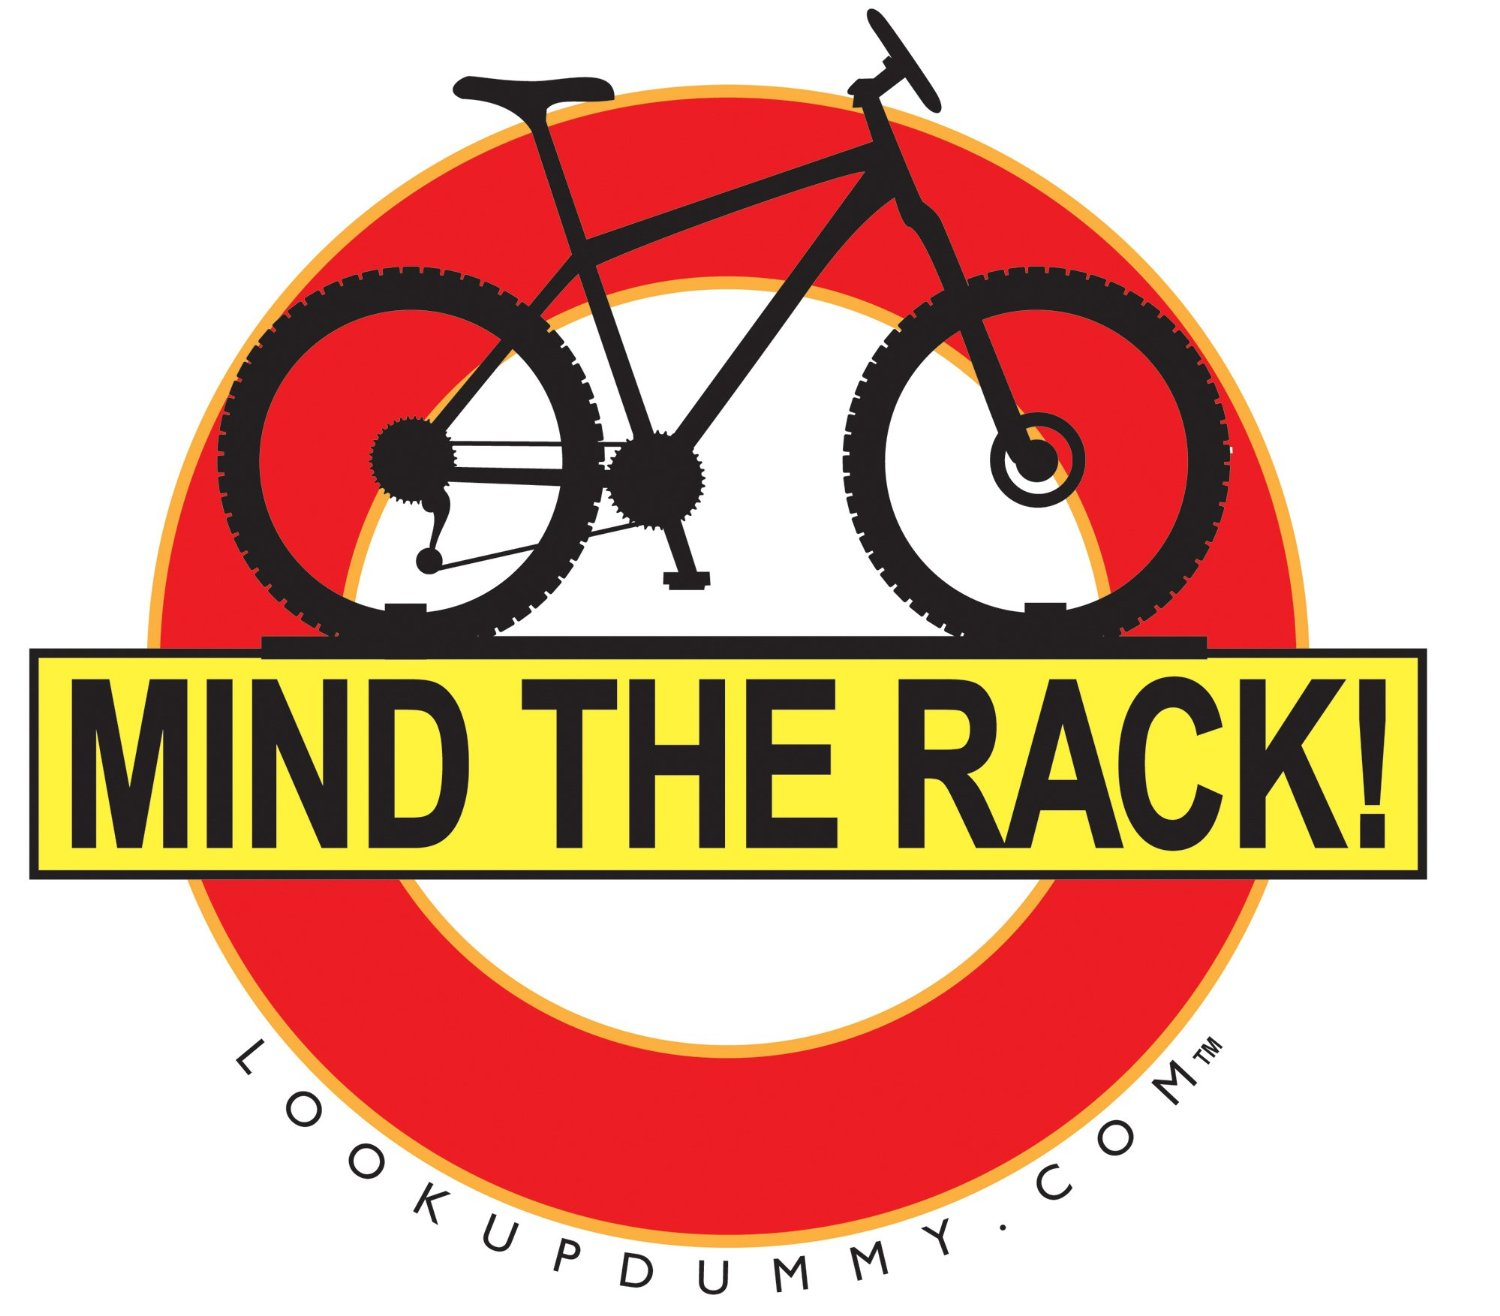 Mind The Rack - Bike Roof Rack and Bike Rear Rack Windshield Reminder and Warning System - A Non-Adhesive Removable and Reusable Vinyl Window Cling - Save Your Bike Car and Rack from Damage!